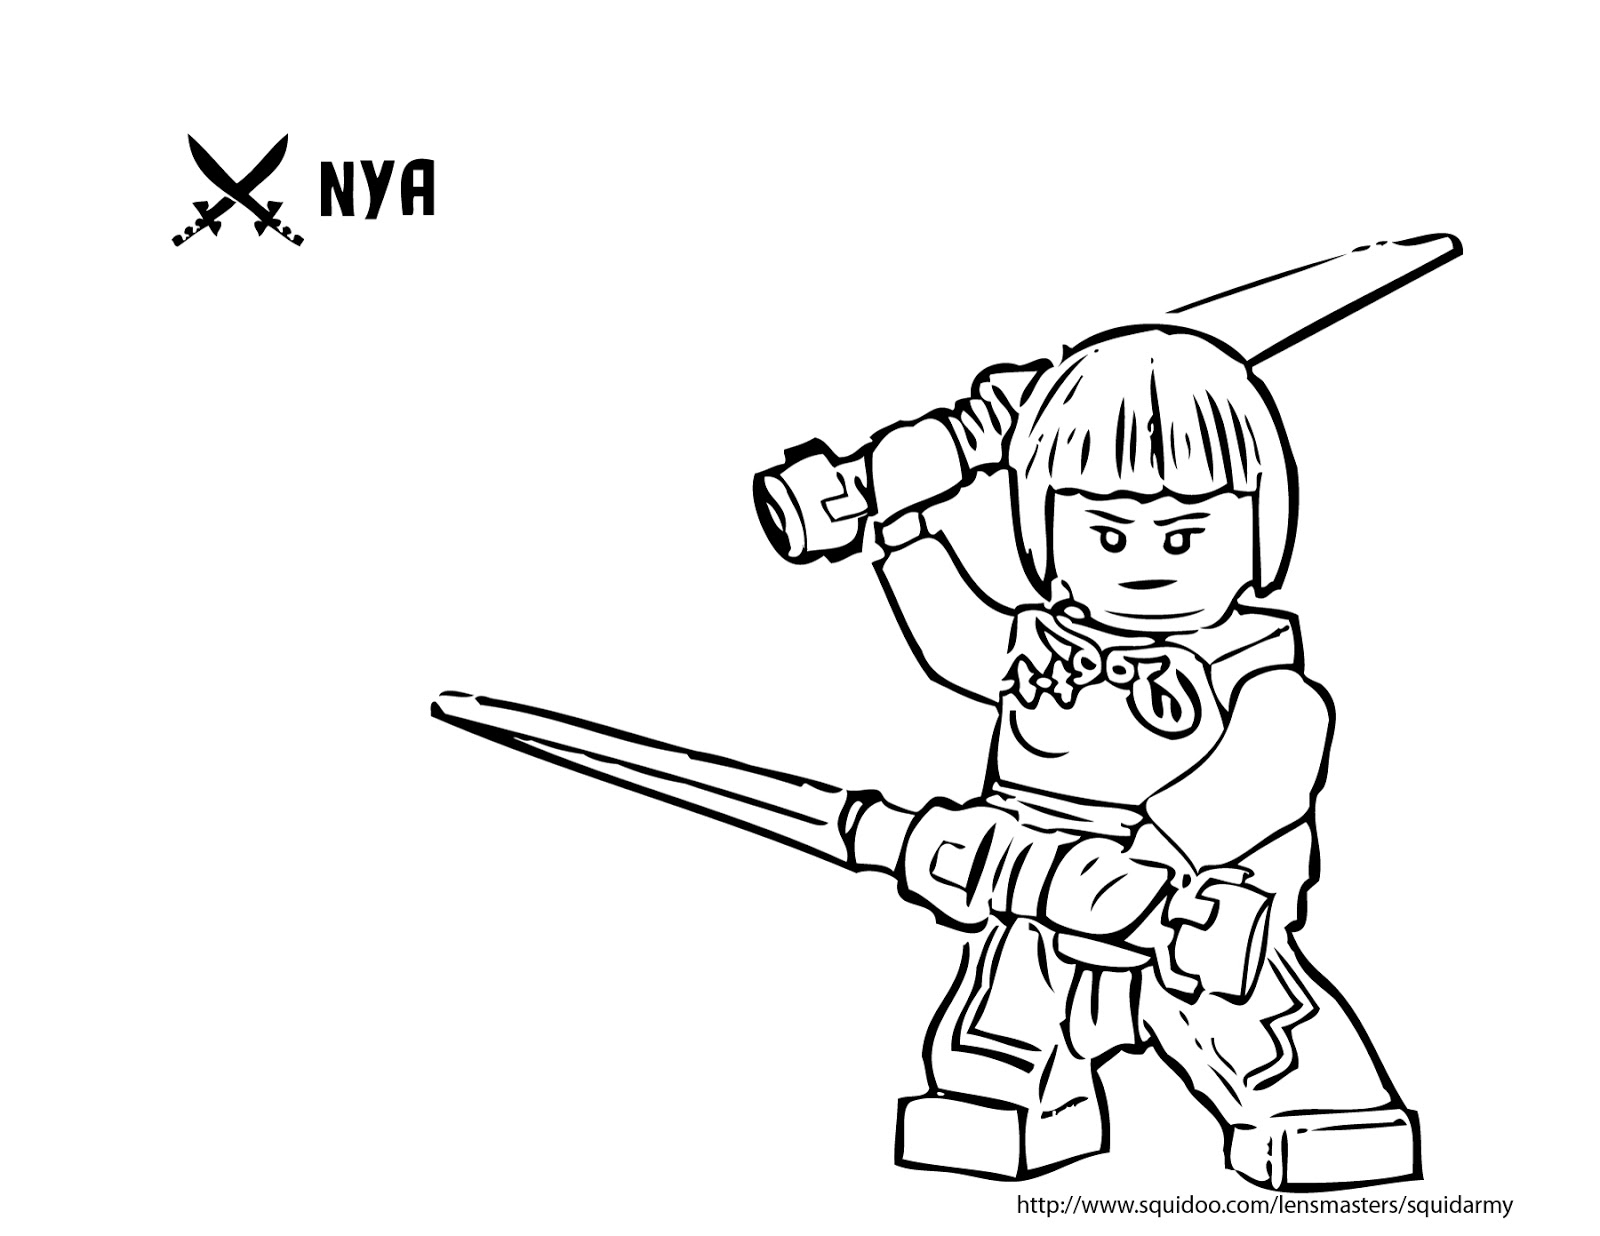 Charmant Coloriage Ninjago Nya 99 sur Coloriage Pages for Coloriage Ninjago Nya